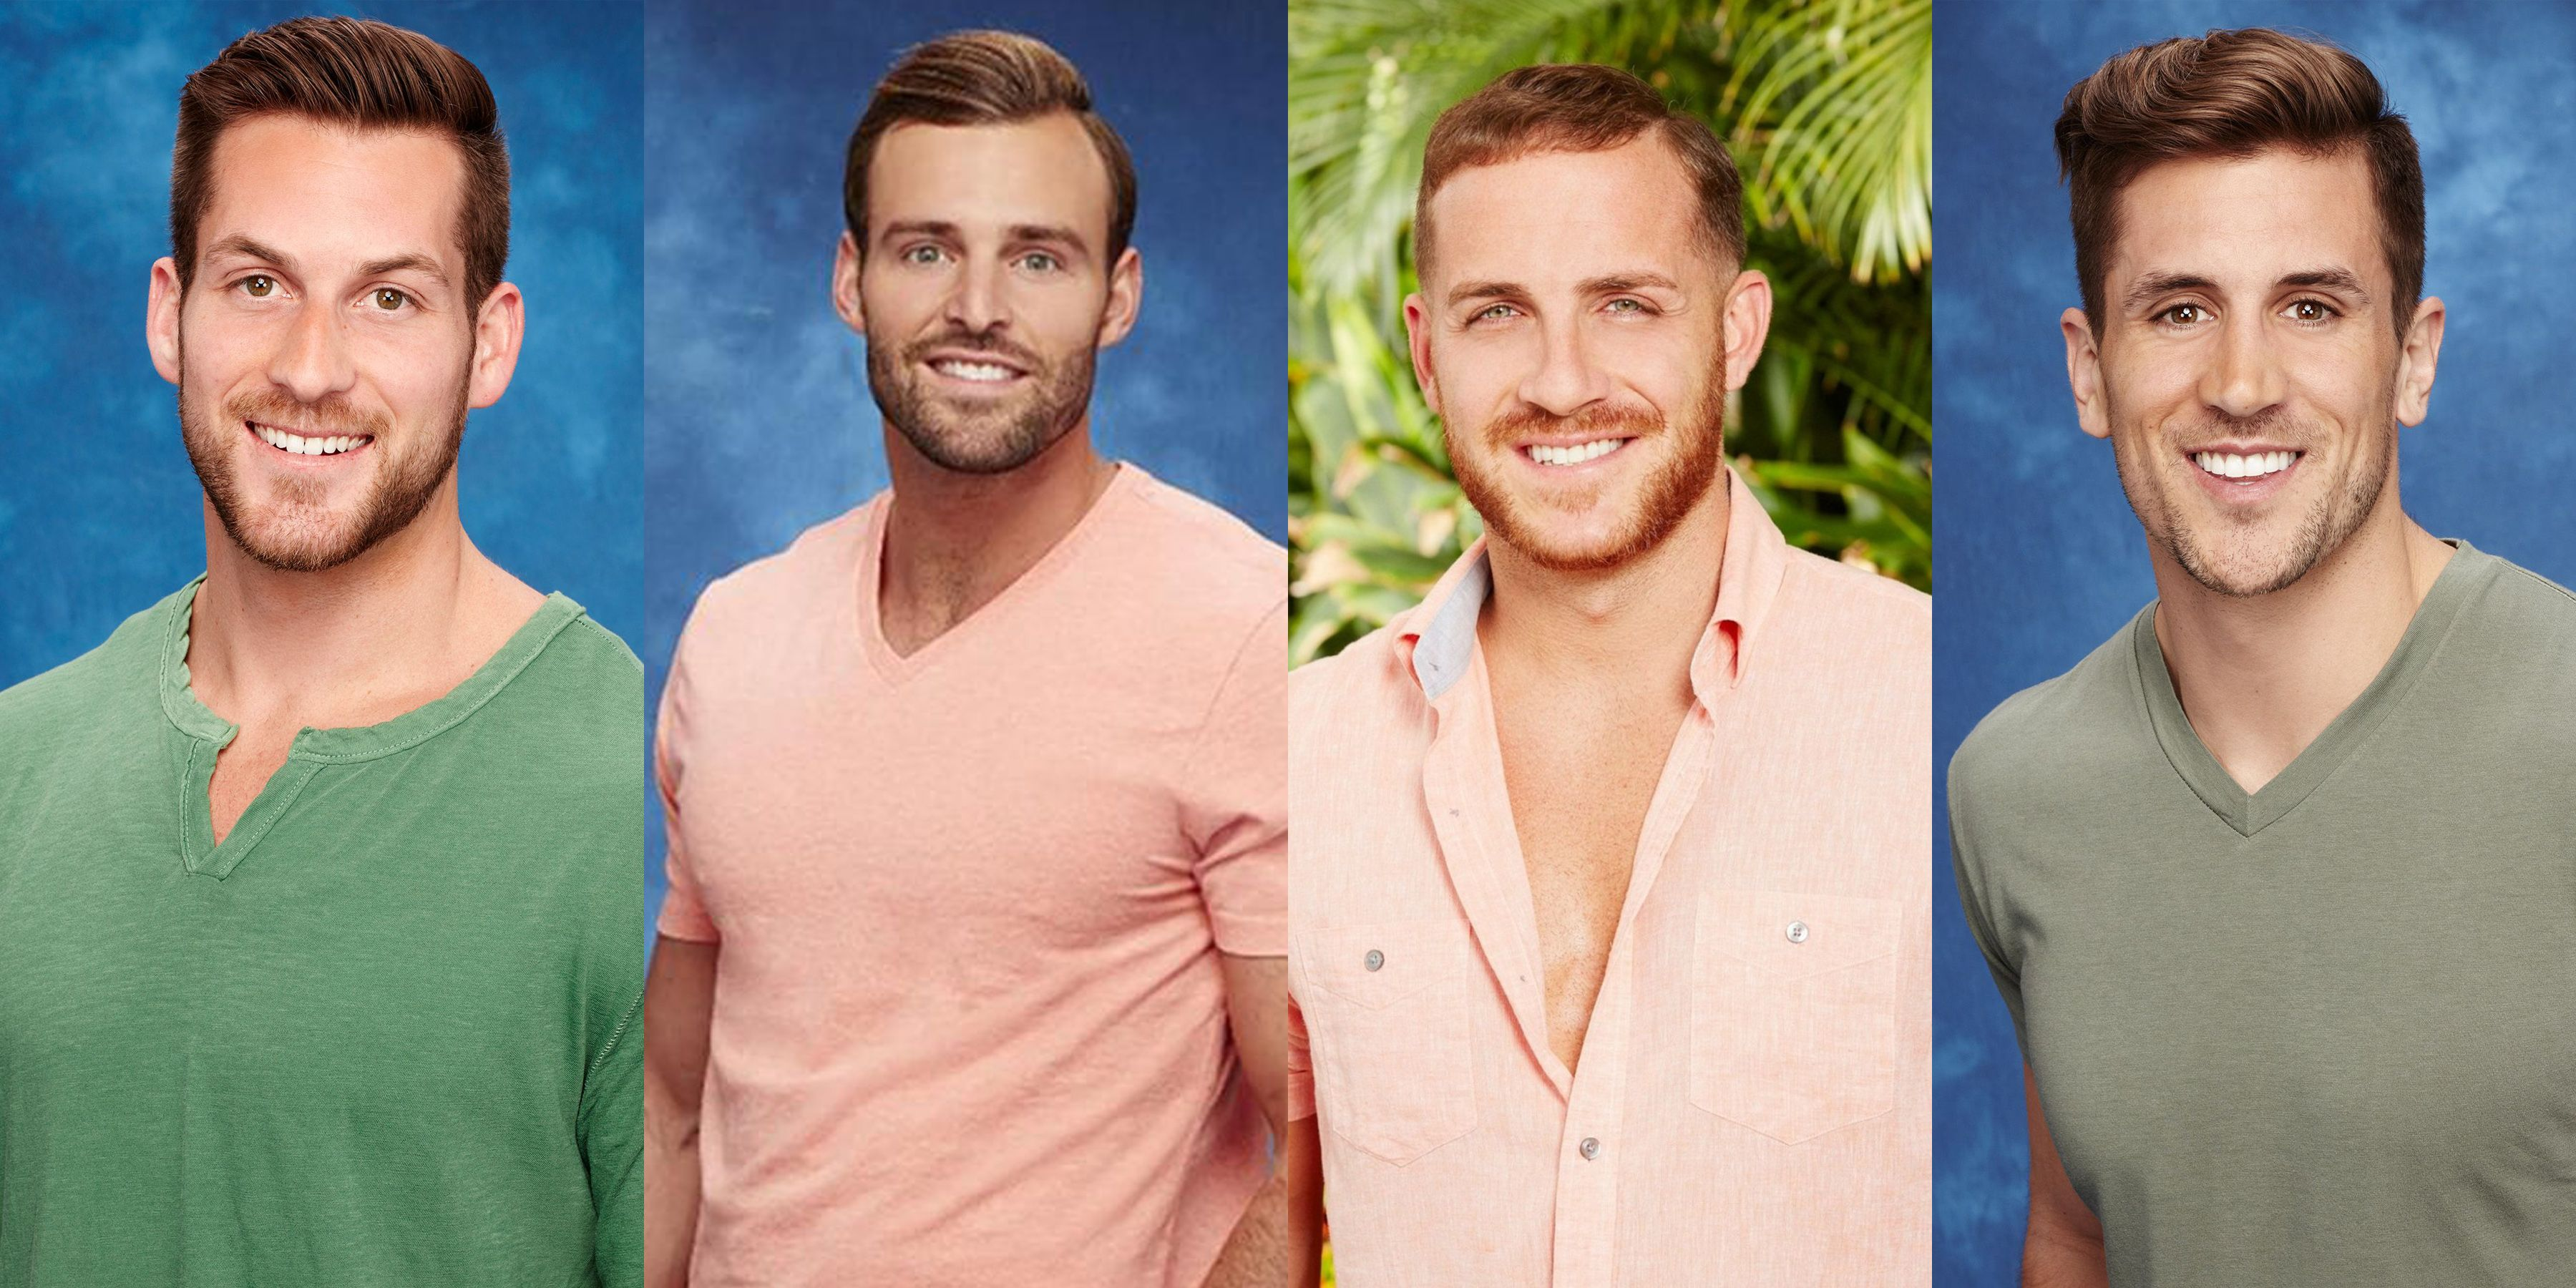 The Bachelorette Contestant Hair Mystery: An Incredibly Deep Dive